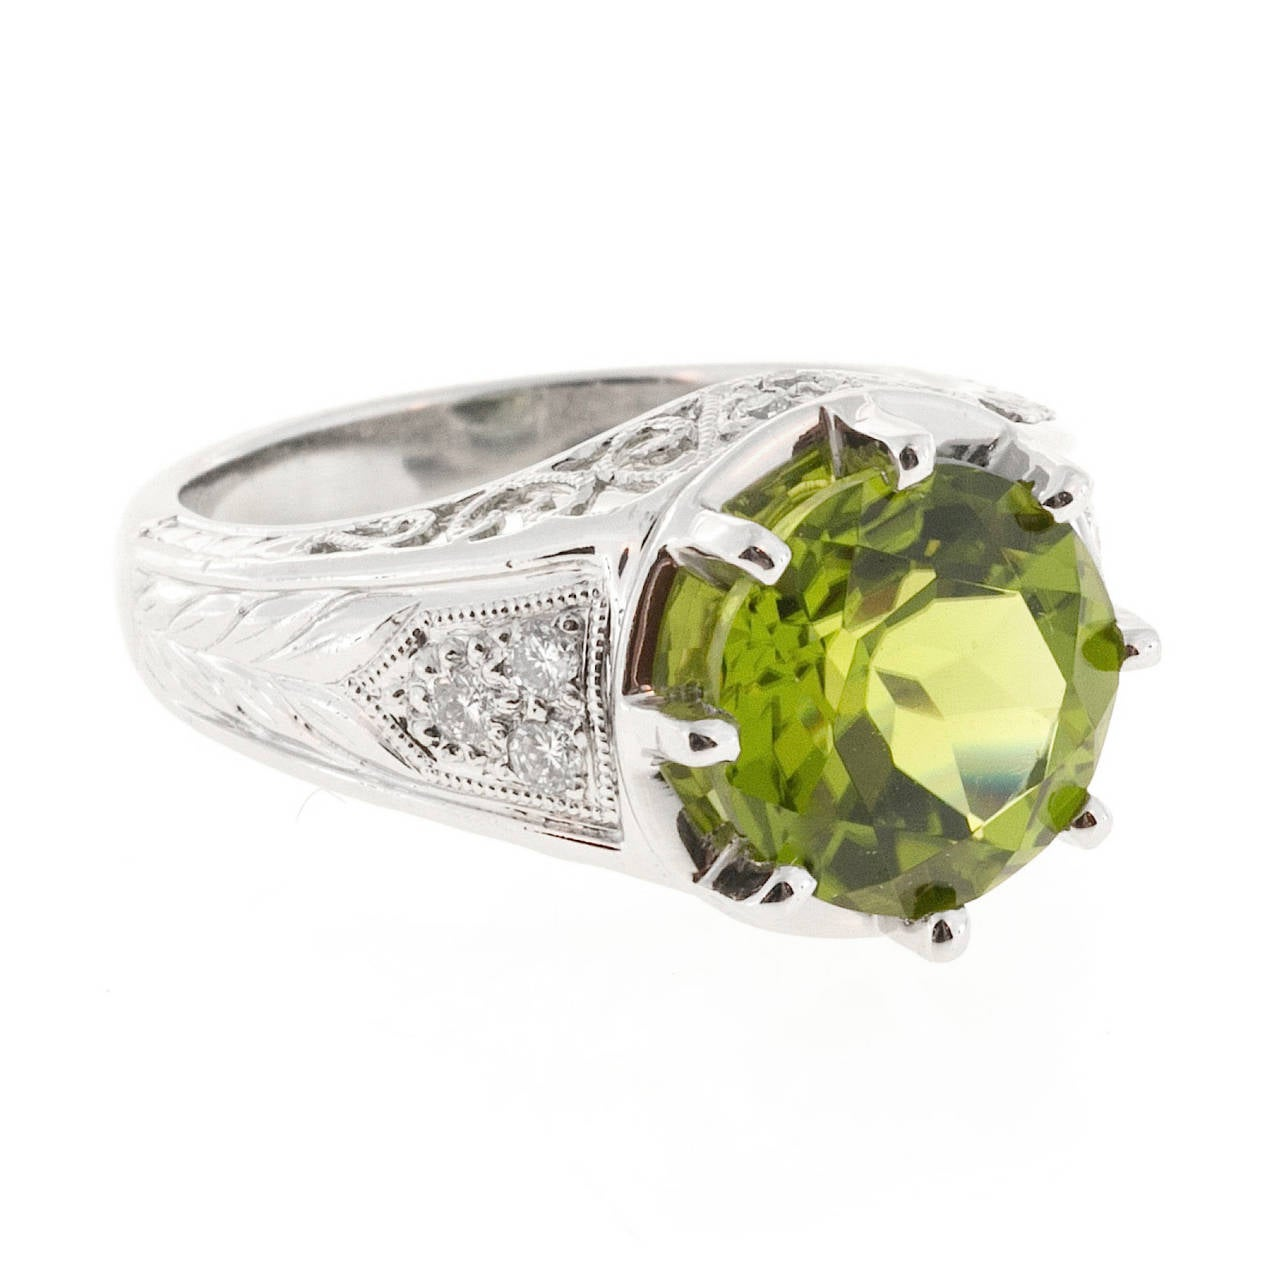 Platinum ring with a top gem round European cut Peridot 4.25ct and nice sparkly diamonds. circa 1940.